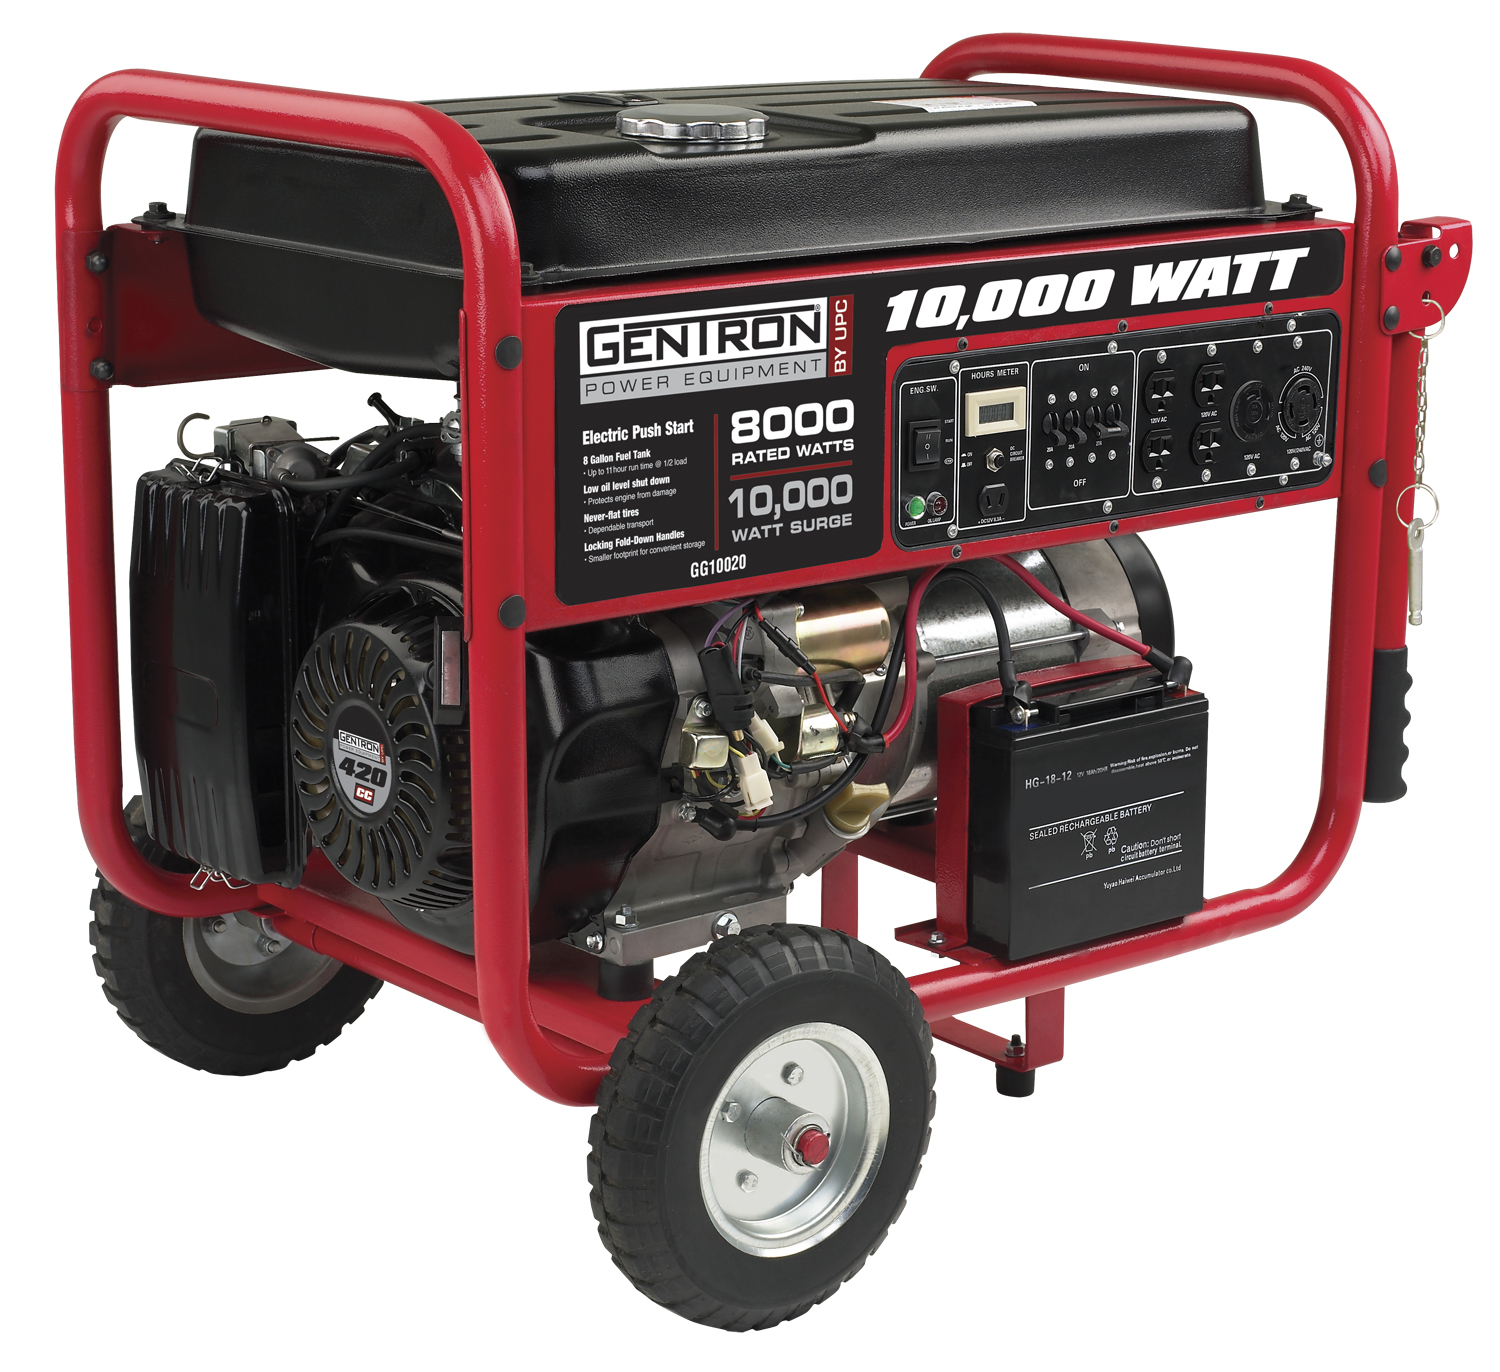 Gentron Portable Generator GG Watt 15 HP Gas